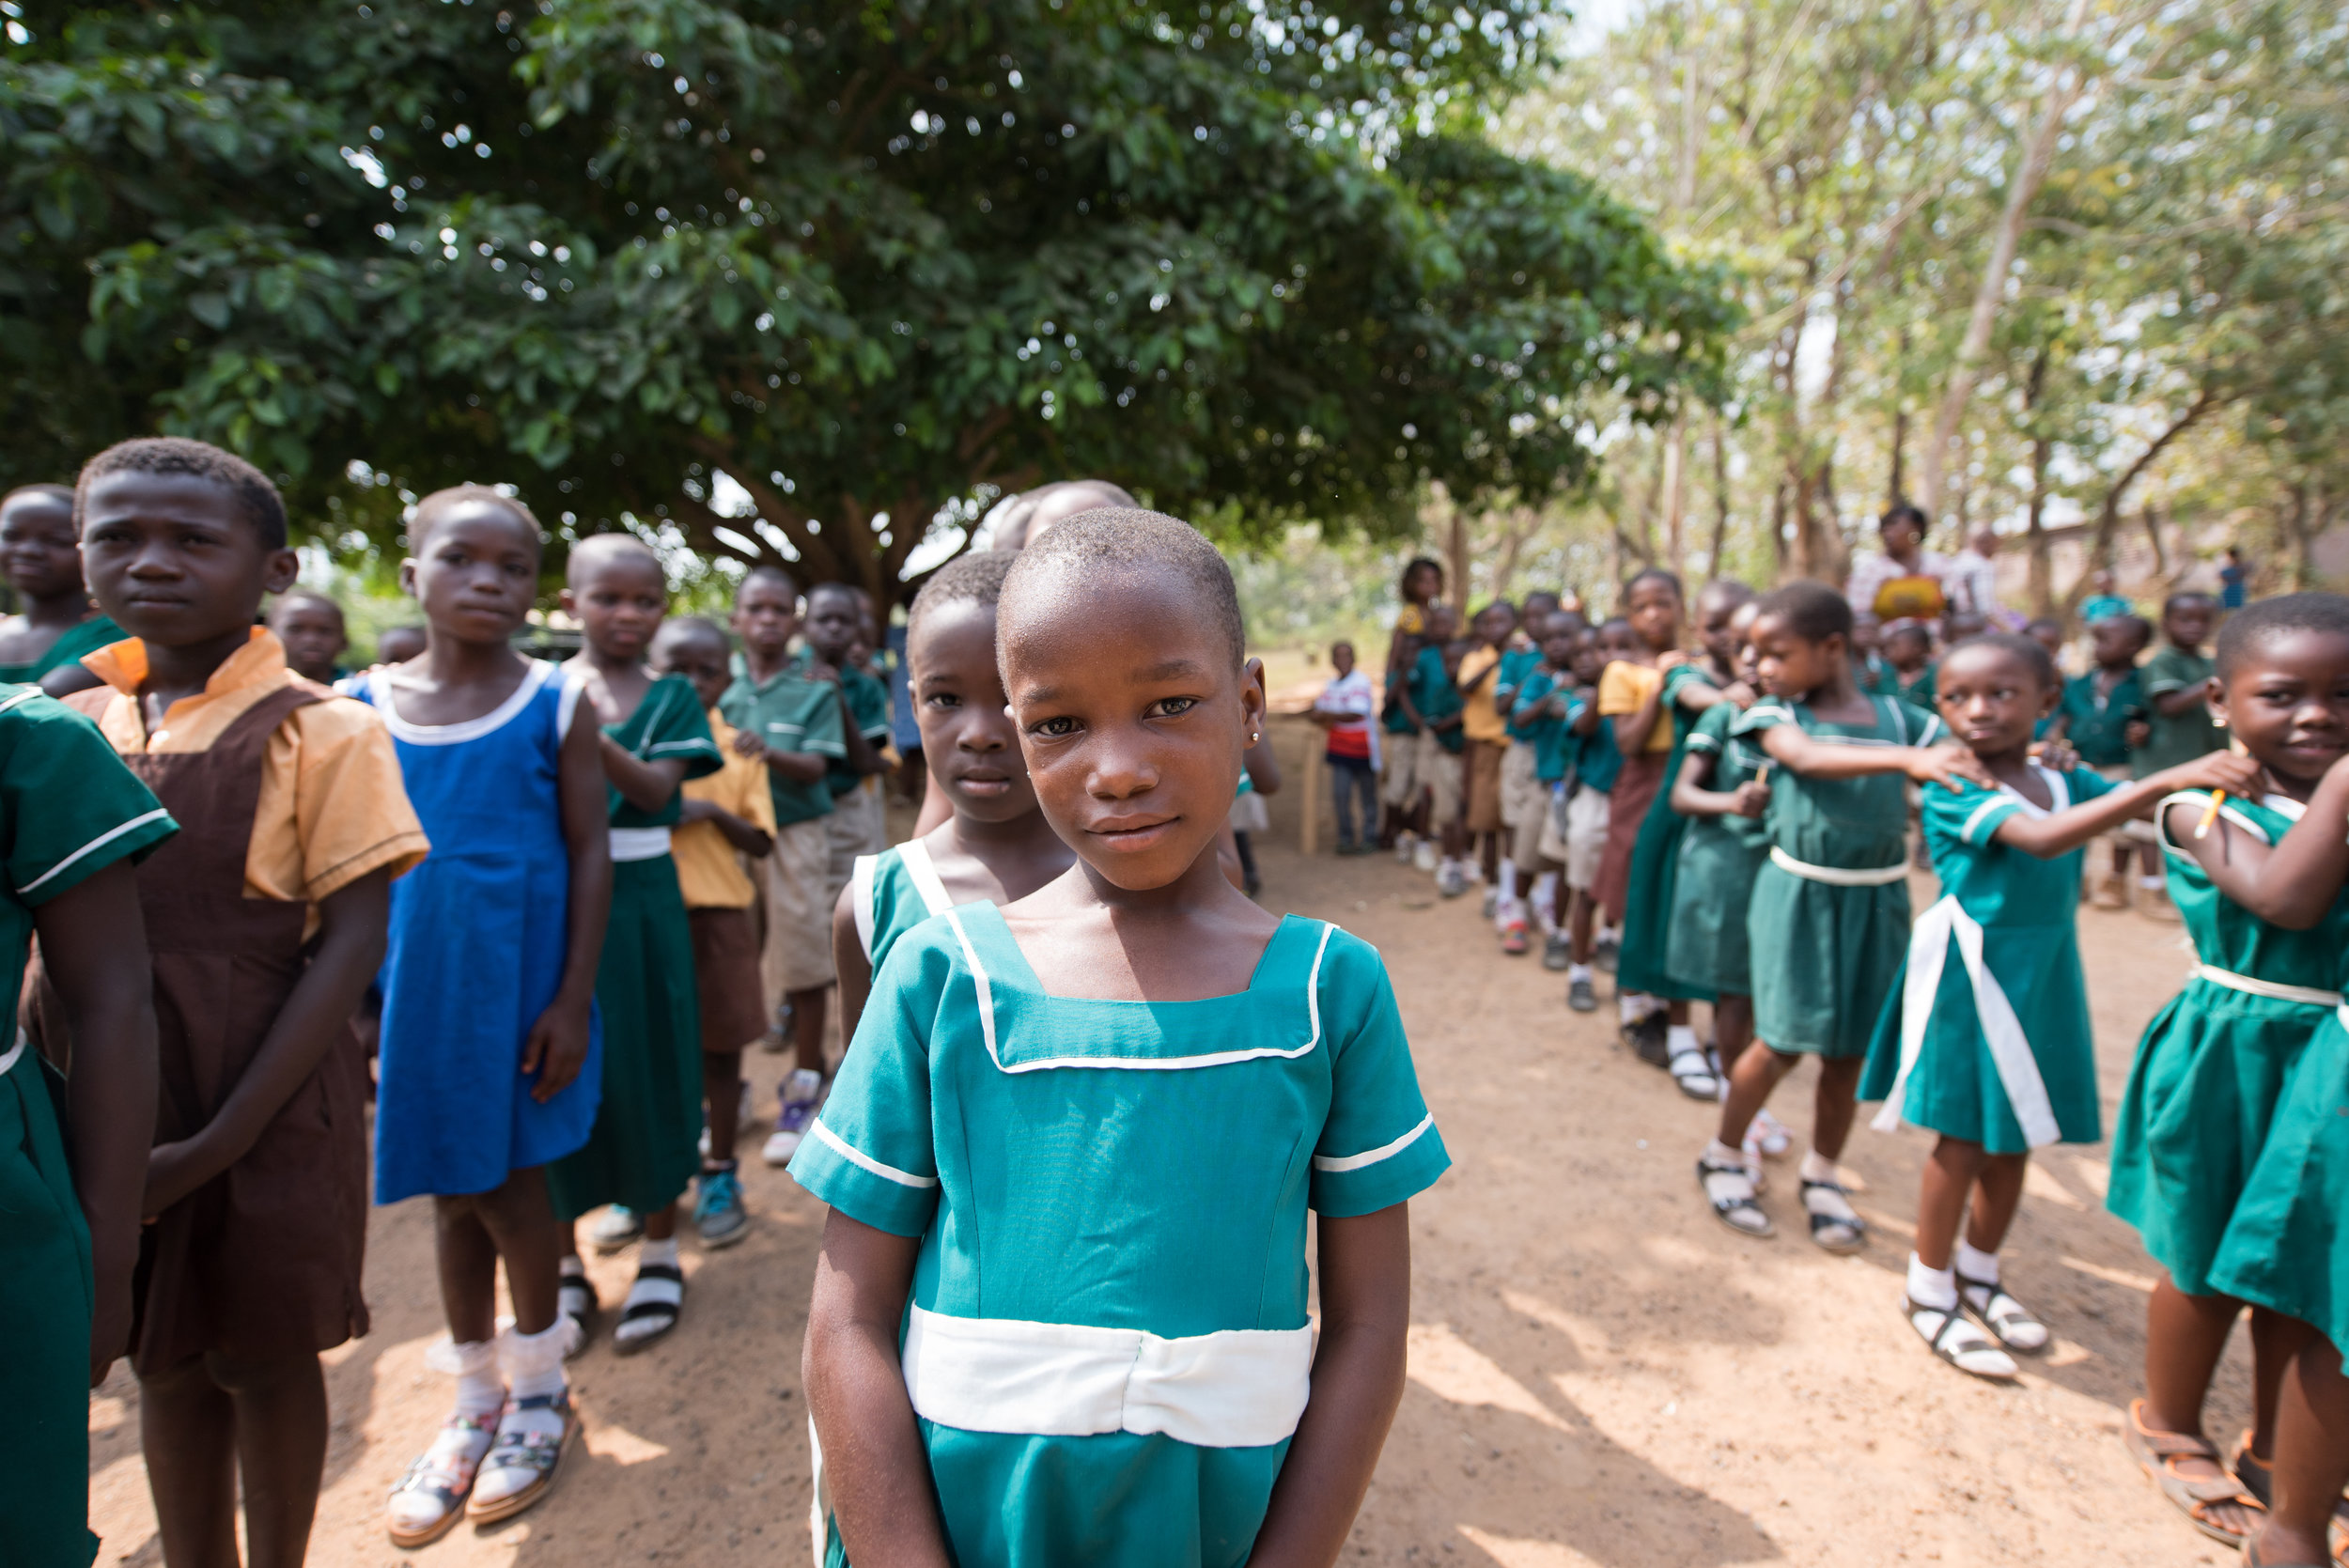 Already at a young age, the children know that OLG Senior High School Ghana is an opportunity for them to RISE and SHINE. -